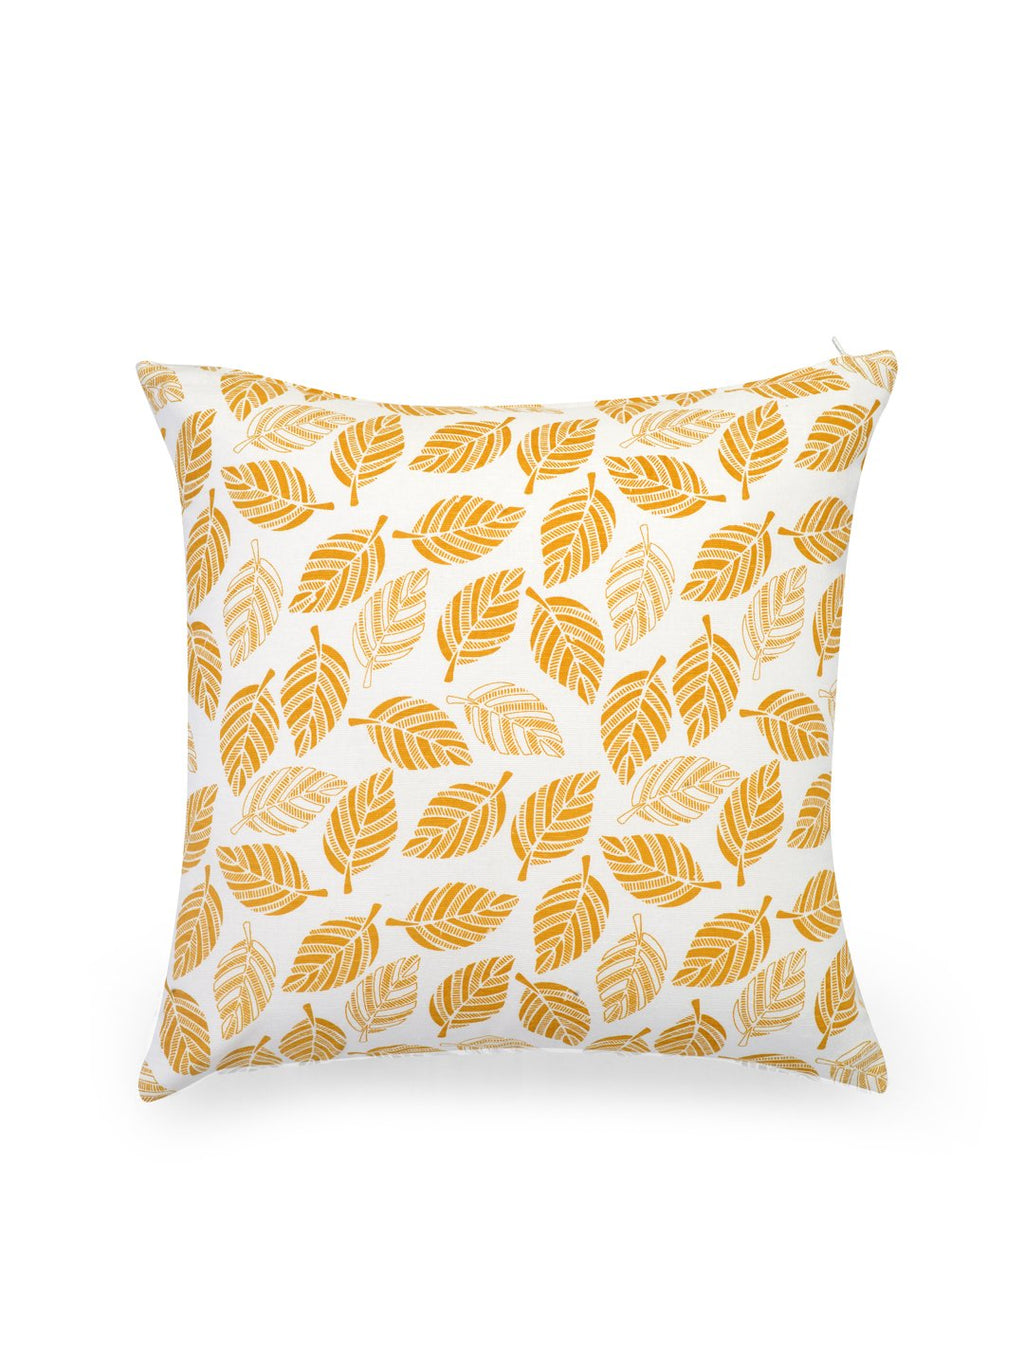 Hand-painted Amber Gift Cushion Covers (Set of 5) - RANGRAGE - 2